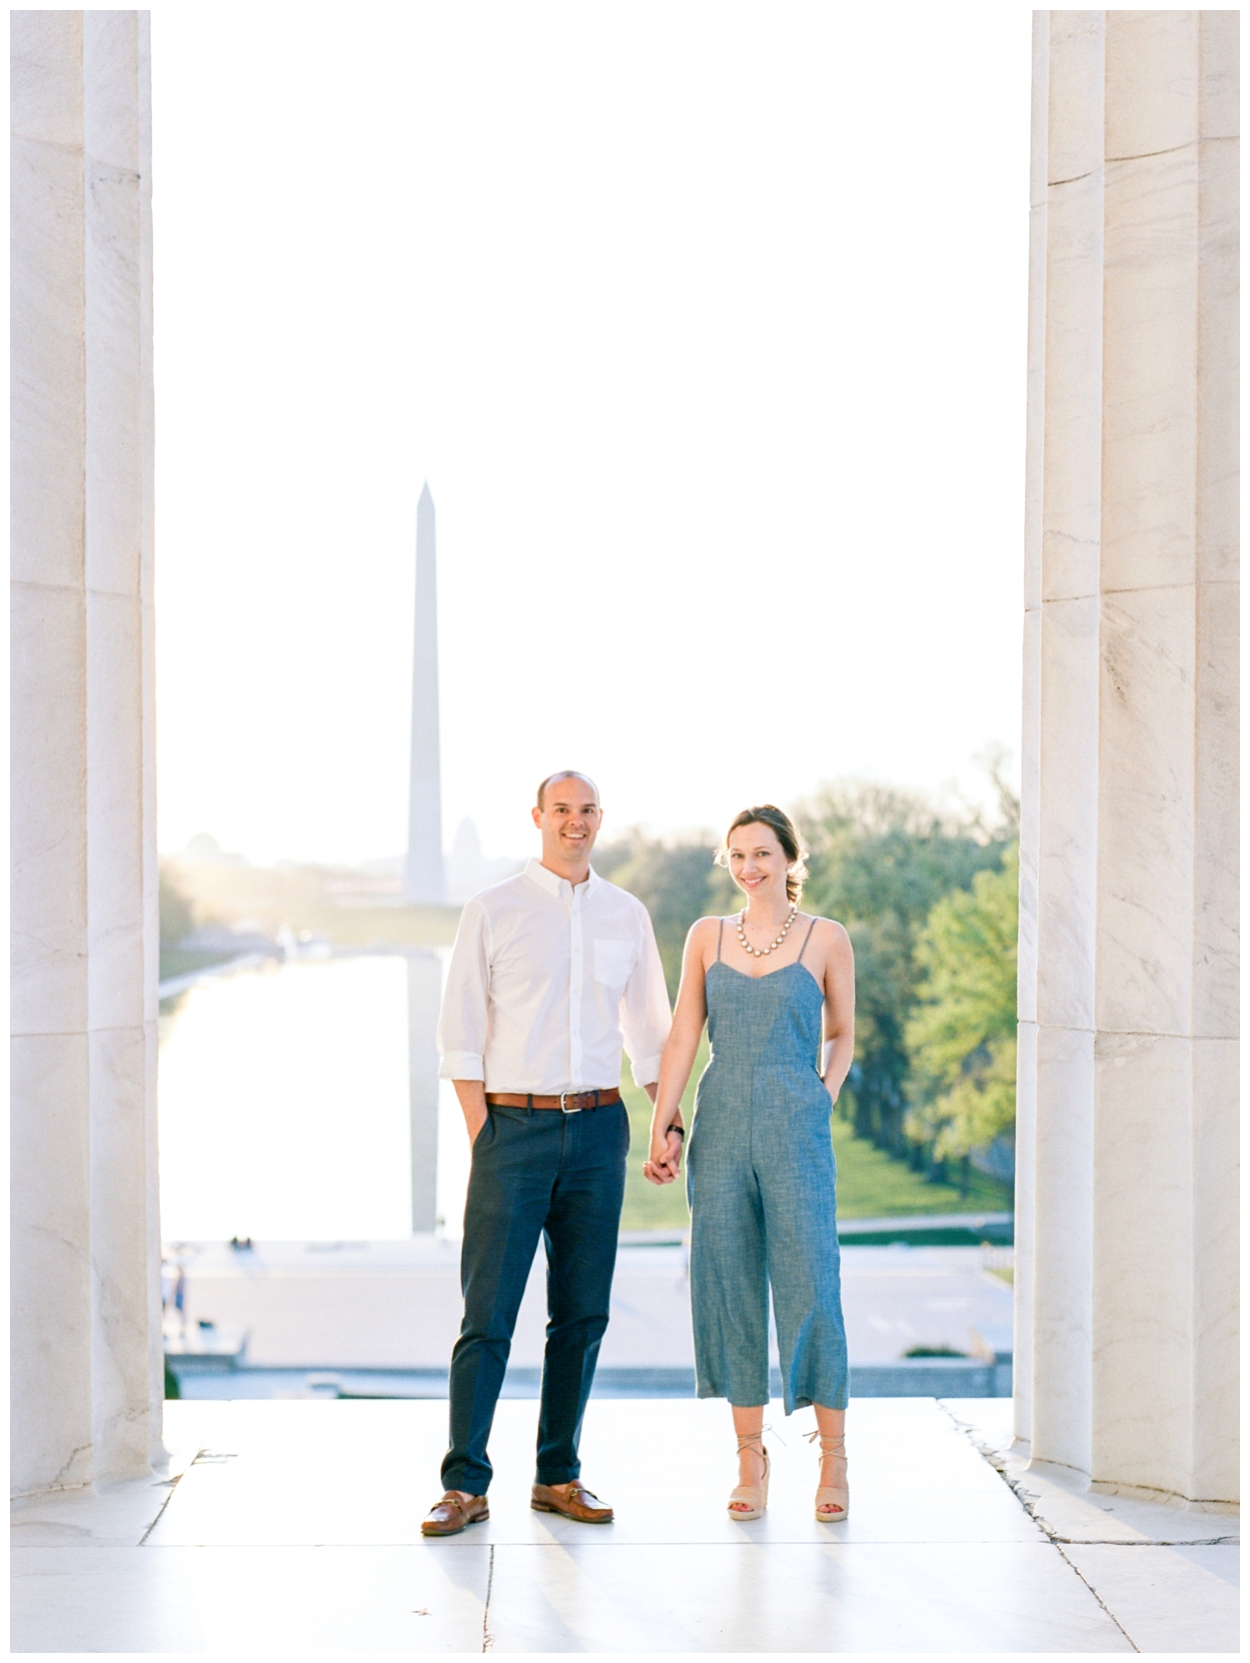 sunrise engagement session at the lincoln memorial in washington dc by fine art wedding photographer Lissa Ryan Photography